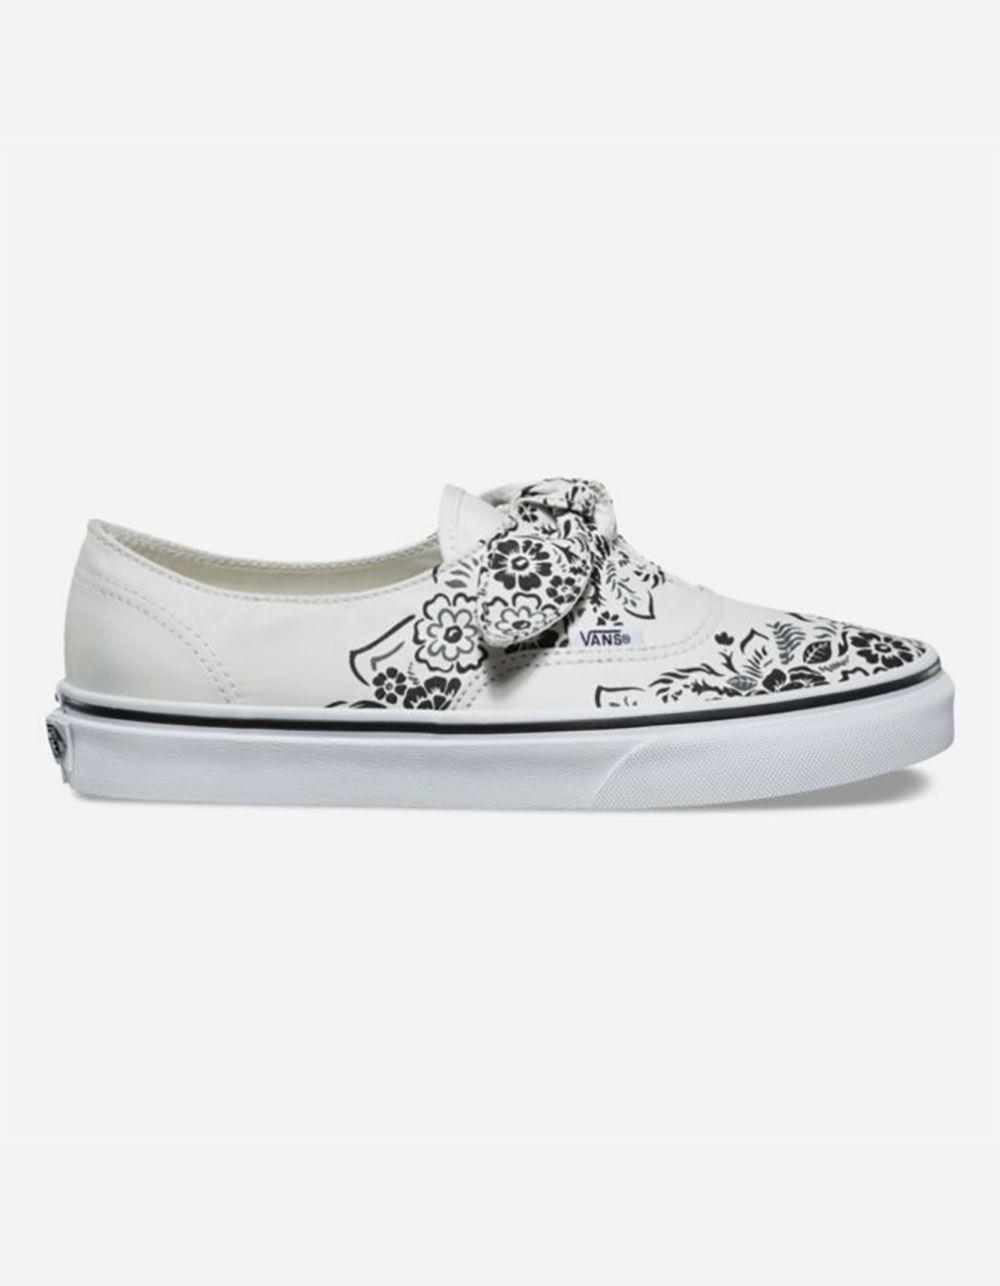 8f92a060b1 Vans - Multicolor Authentic Floral Bandana Knotted Marshmallow Womens Shoes  - Lyst. View fullscreen